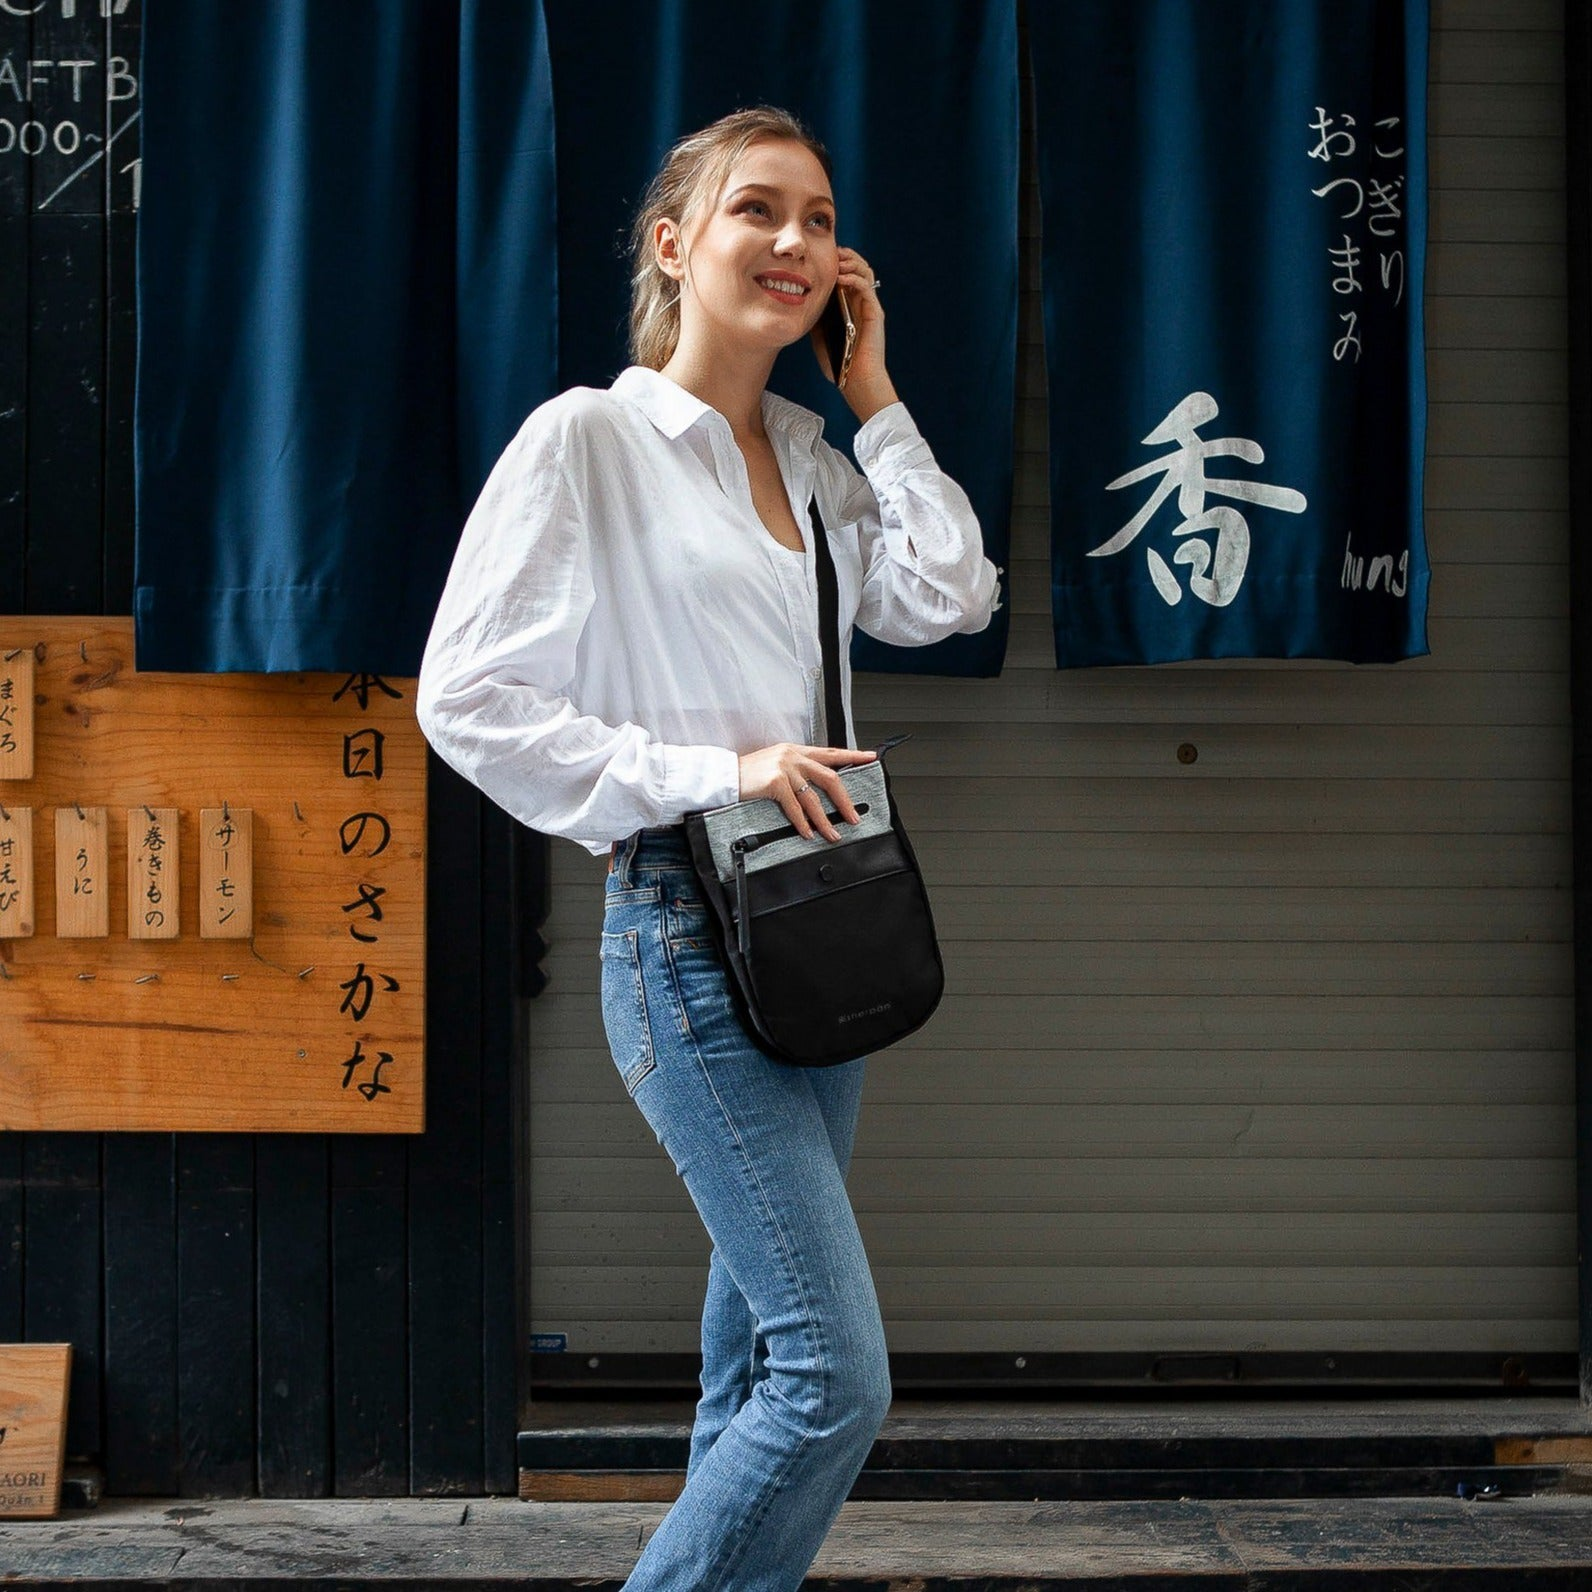 White Anti-theft Crossbody with anti-theft features on a woman on street